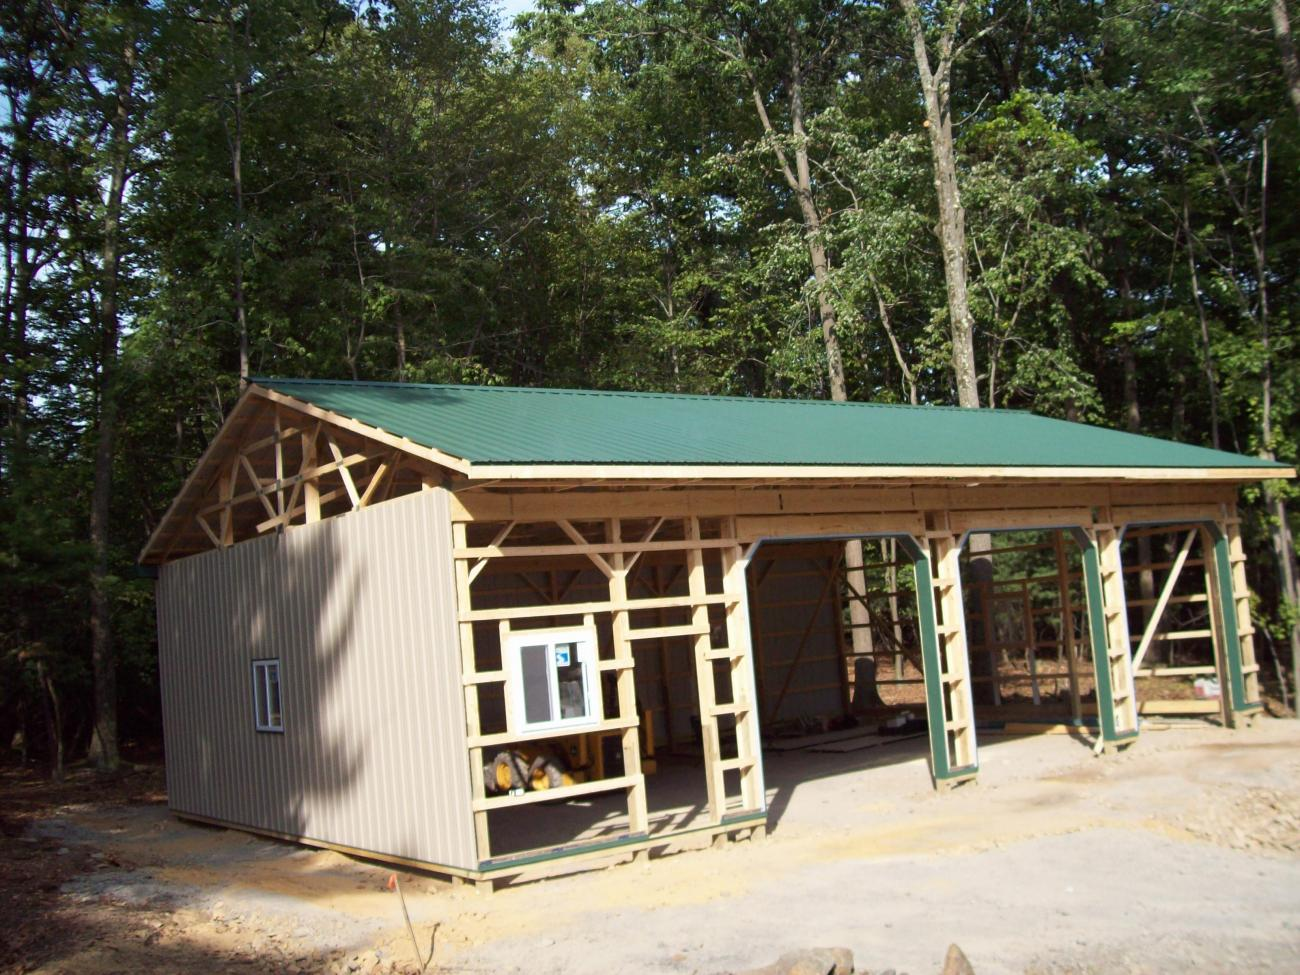 hight resolution of pole barn during construction with some siding and roofing added